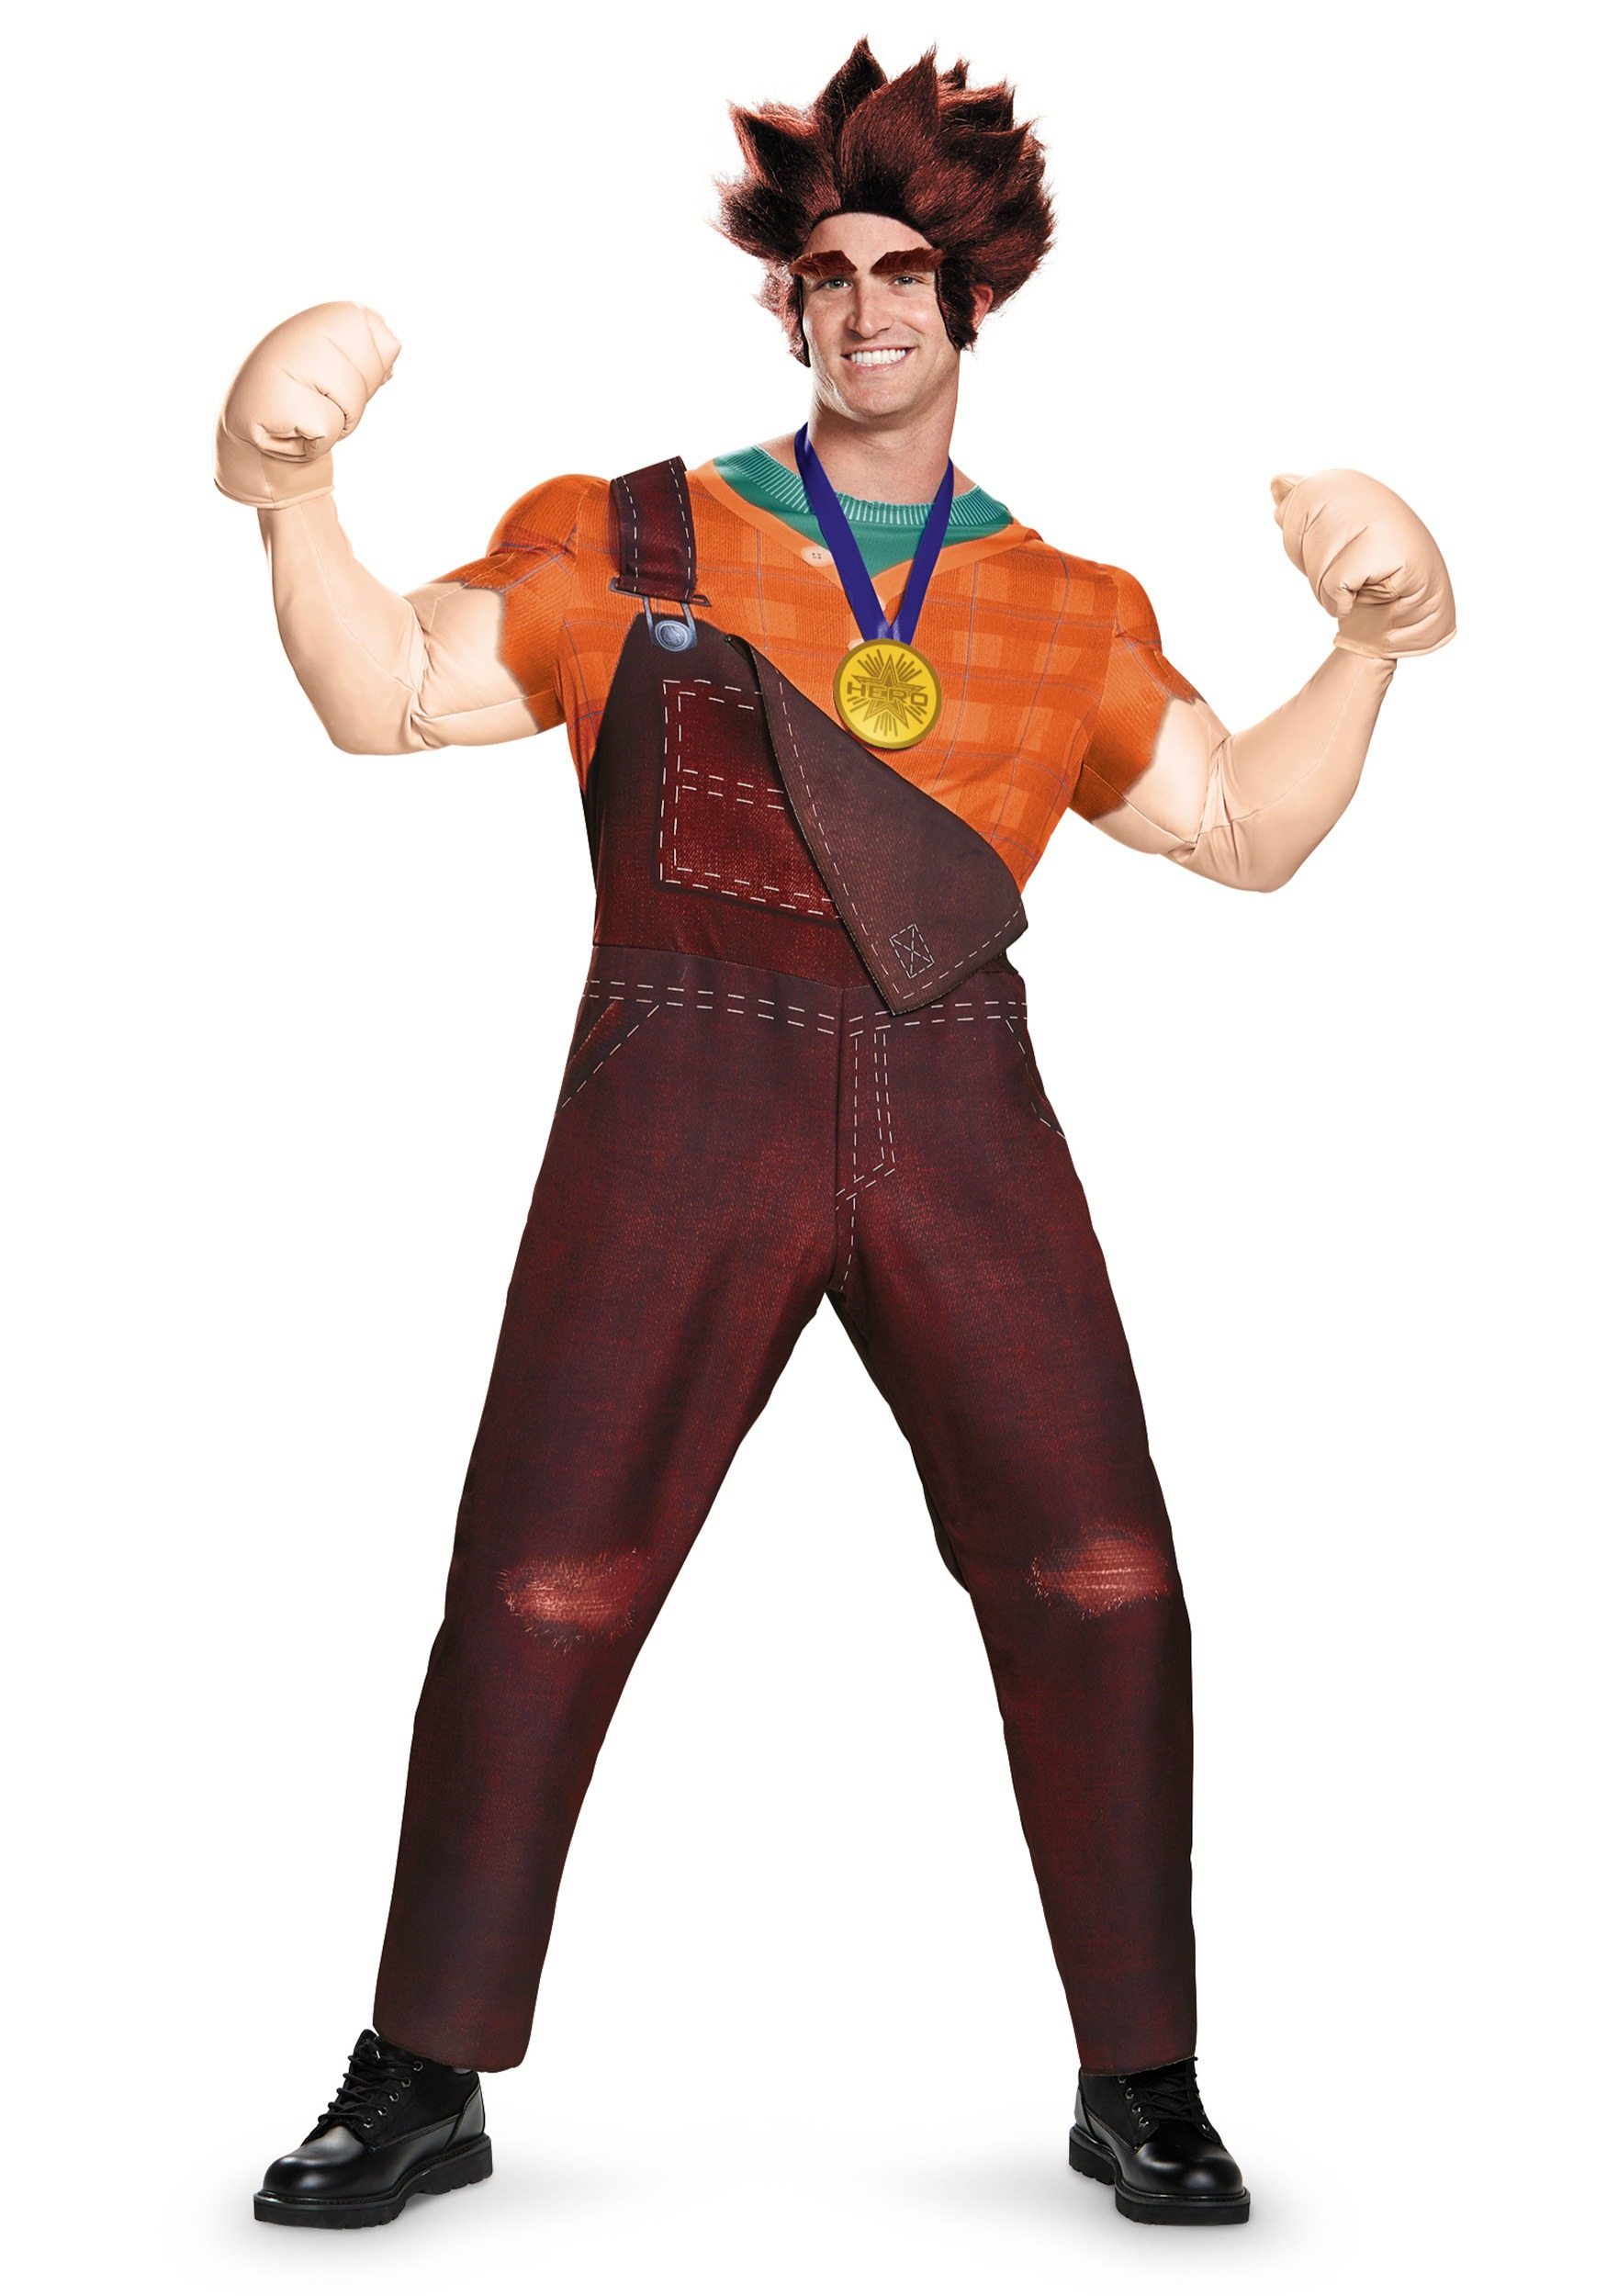 adult deluxe wreck it ralph costume - Cheapest Place To Buy Halloween Costumes